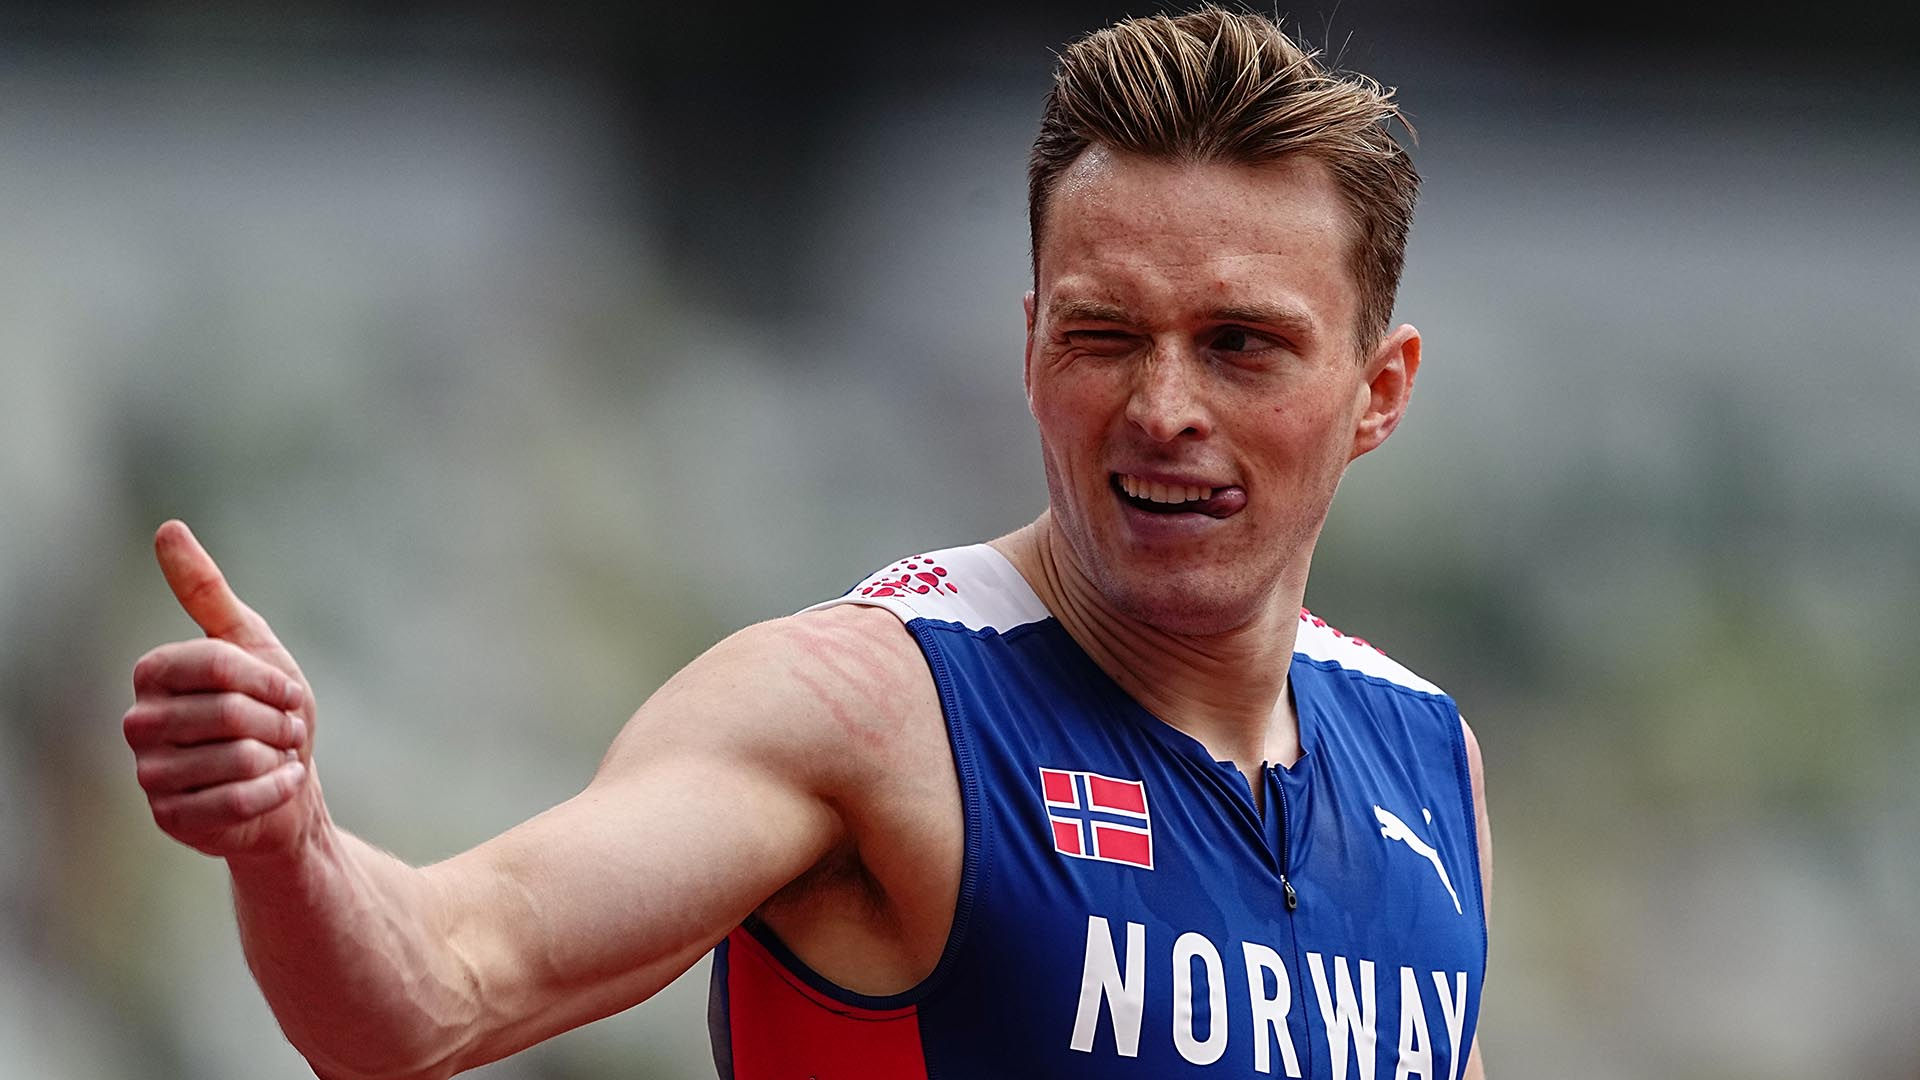 30 July 2021, Japan, Tokio: Athletics: Olympics, preliminaries, 400 m hurdles, men, heats at the Olympic Stadium. Karsten Warholm from Norway gives a thumbs up after his run. Photo: Michael Kappeler/dpa (Photo by Michael Kappeler/picture alliance via Getty Images)